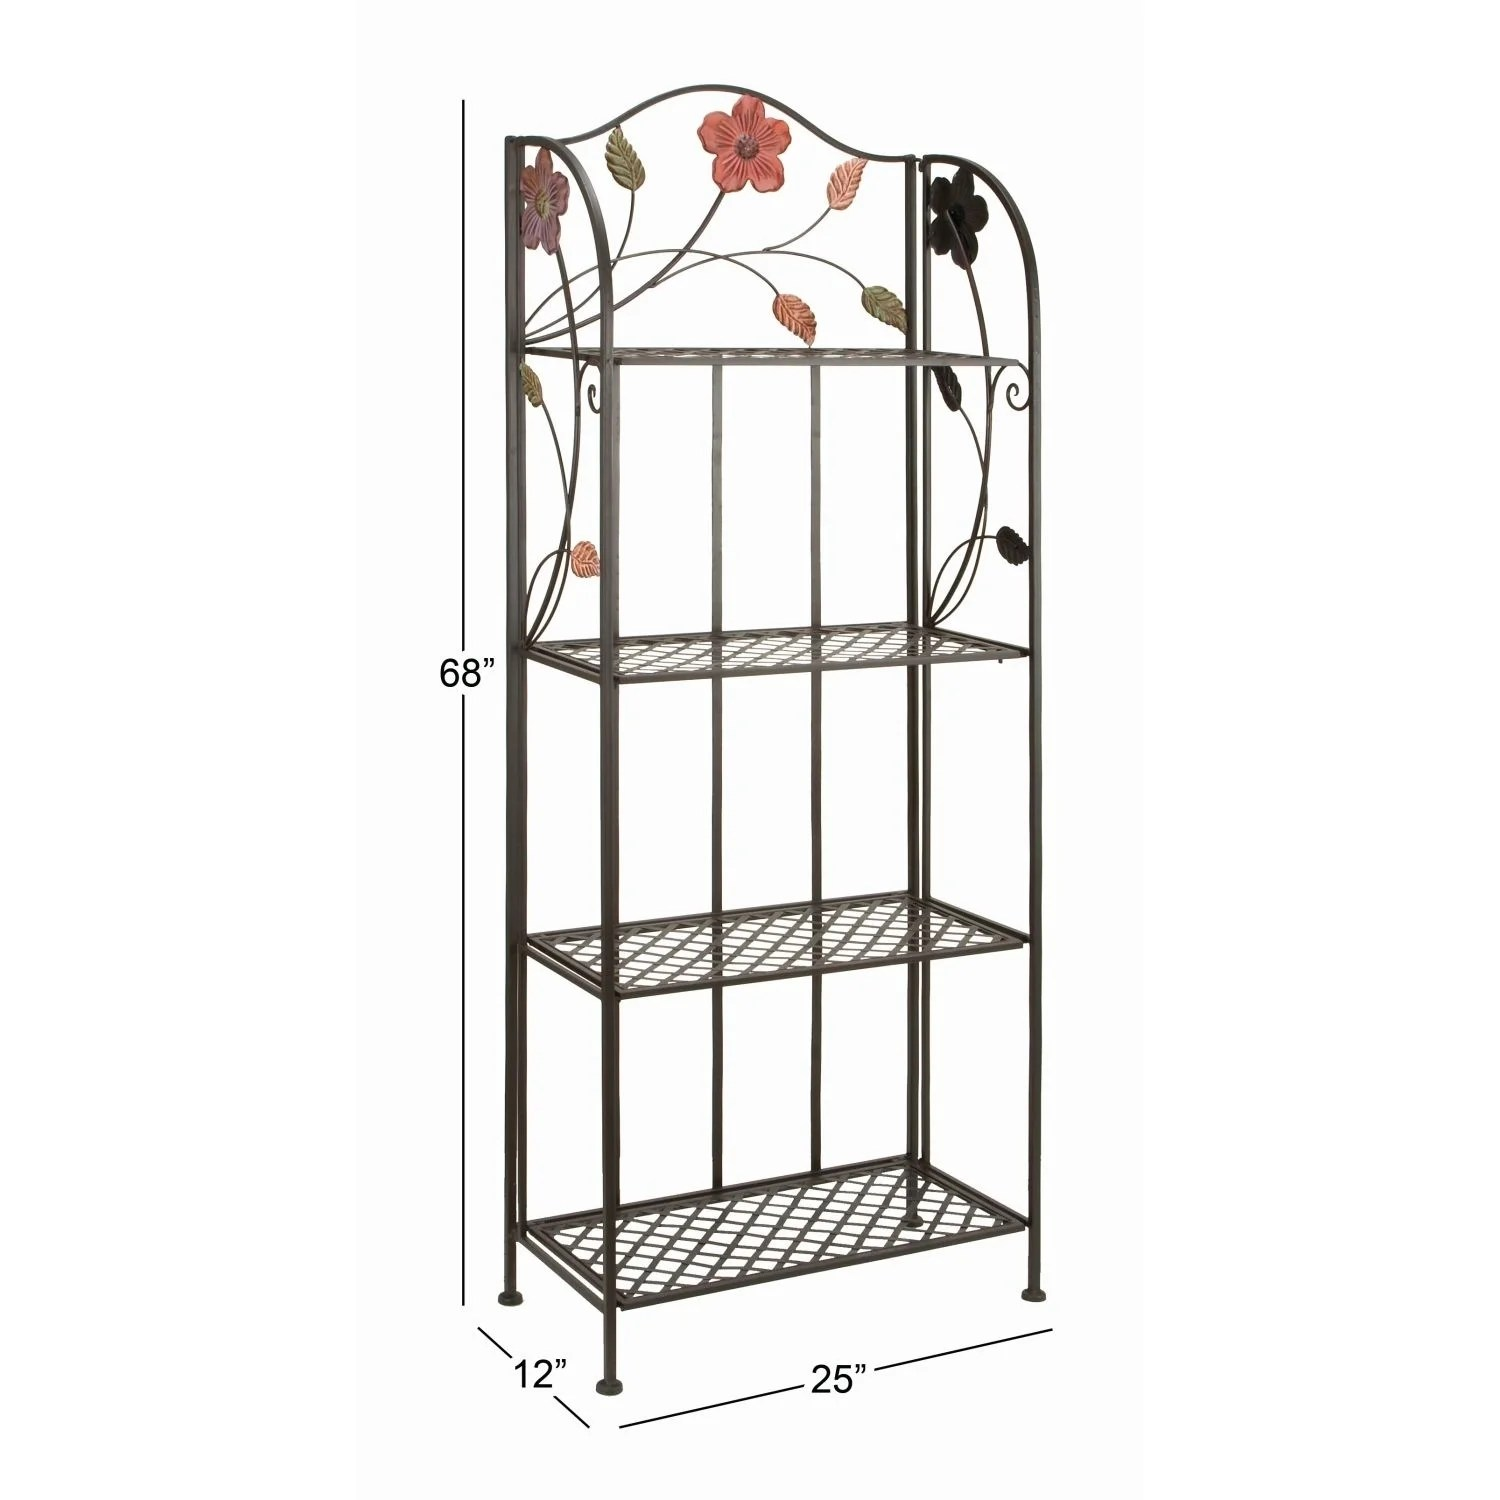 studio 350 metal bakers rack 68 inches high 25 inches wide 12 inches d